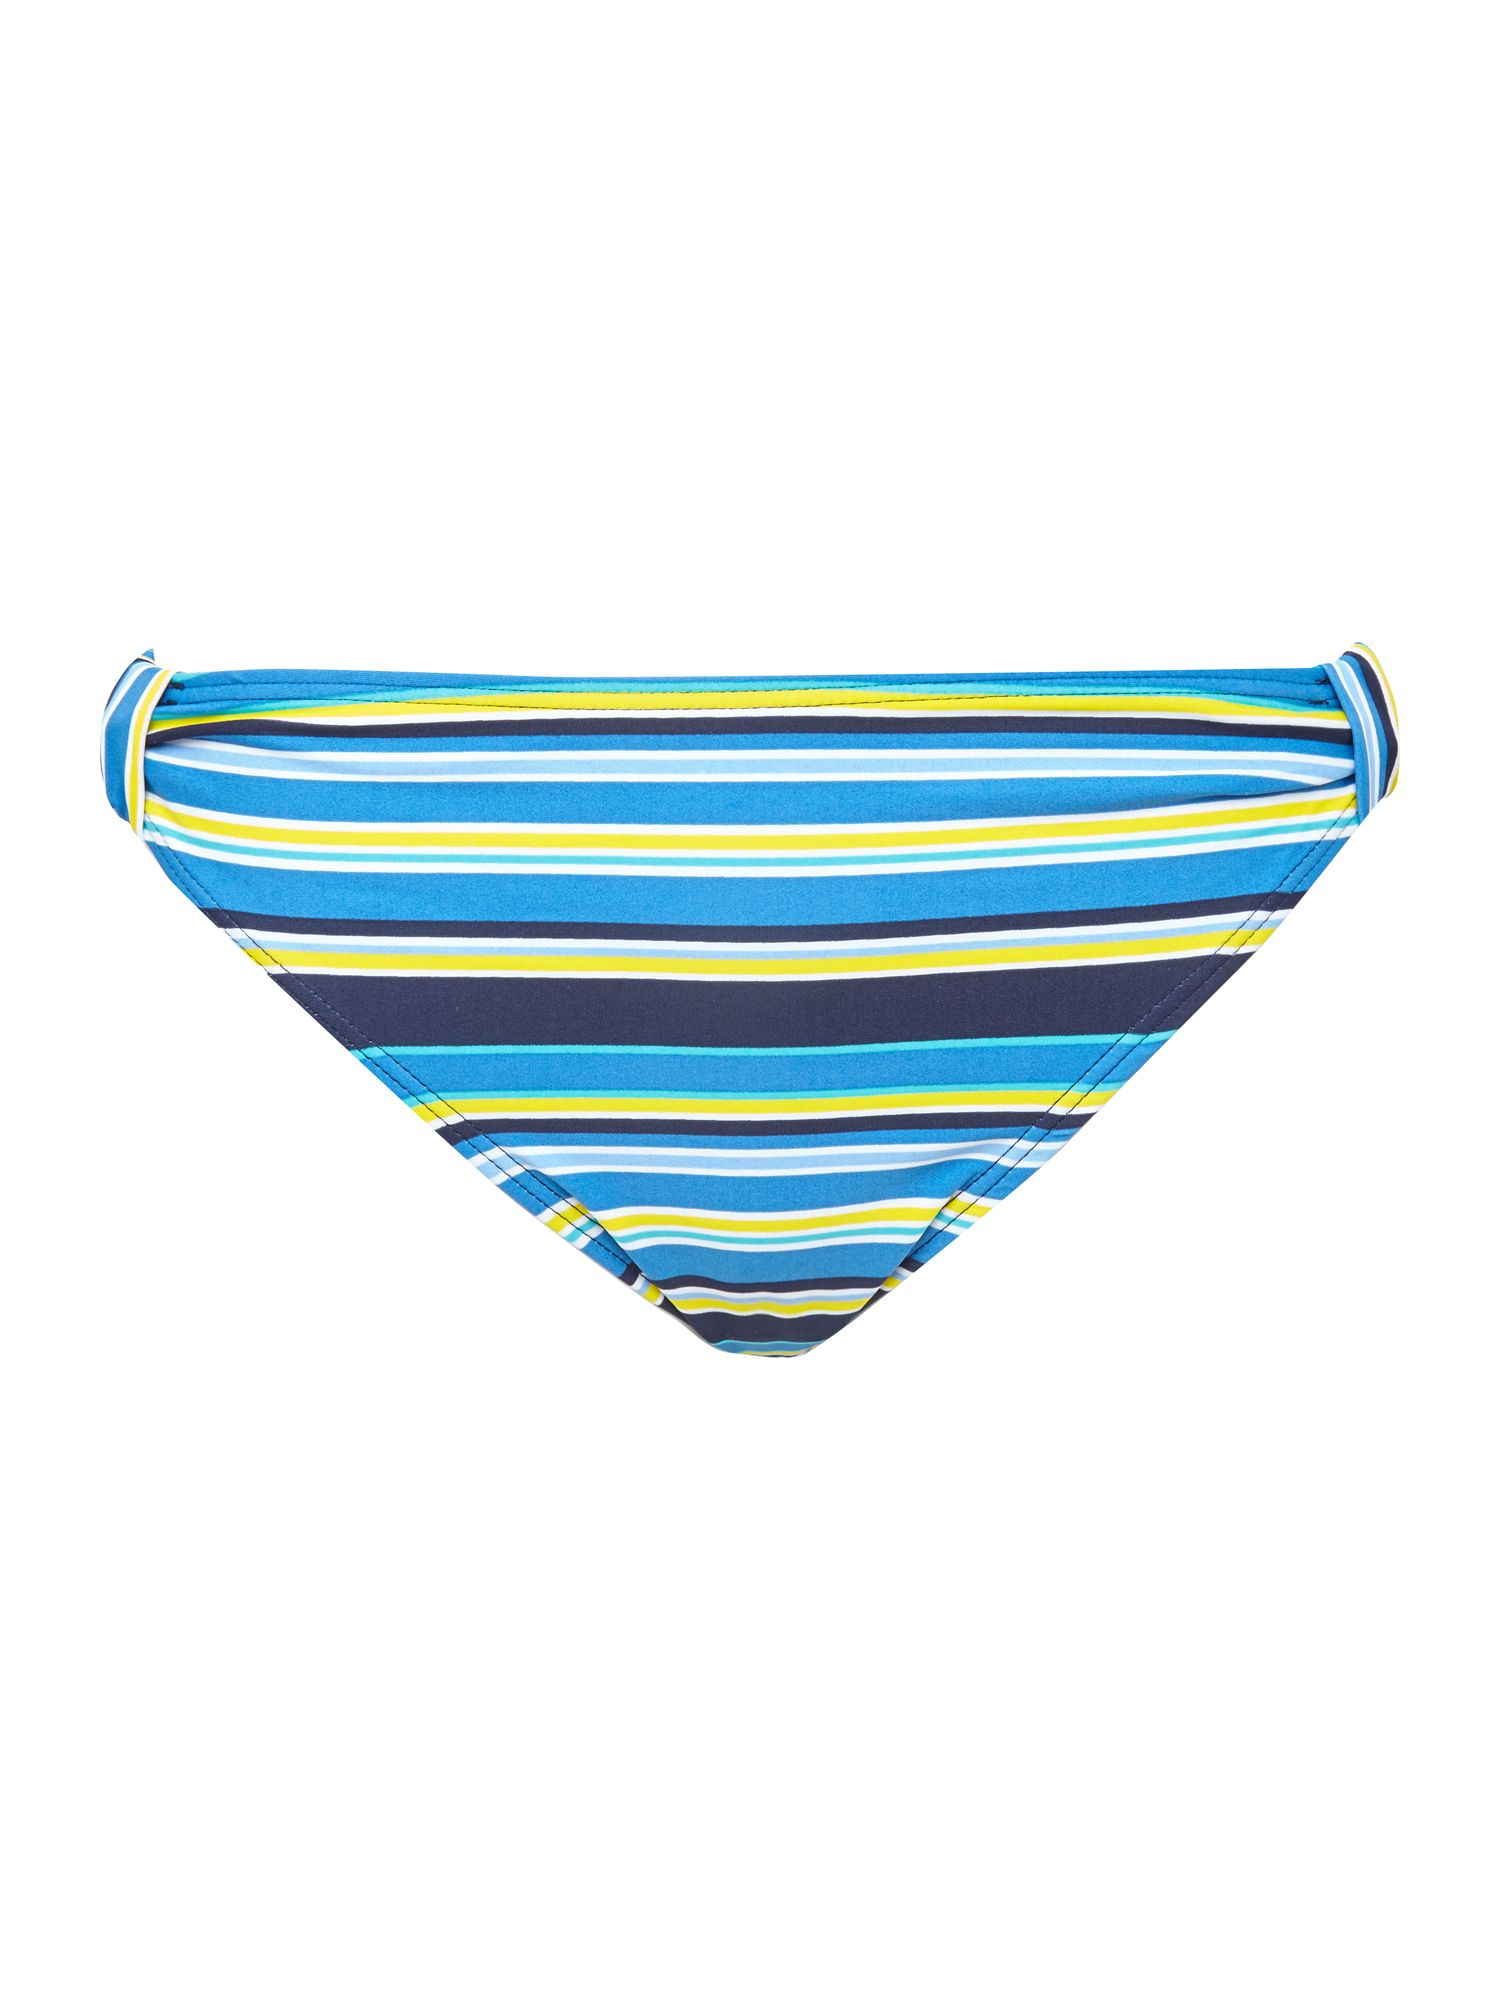 Dickins & Jones Stripe bikini bried, Yellow